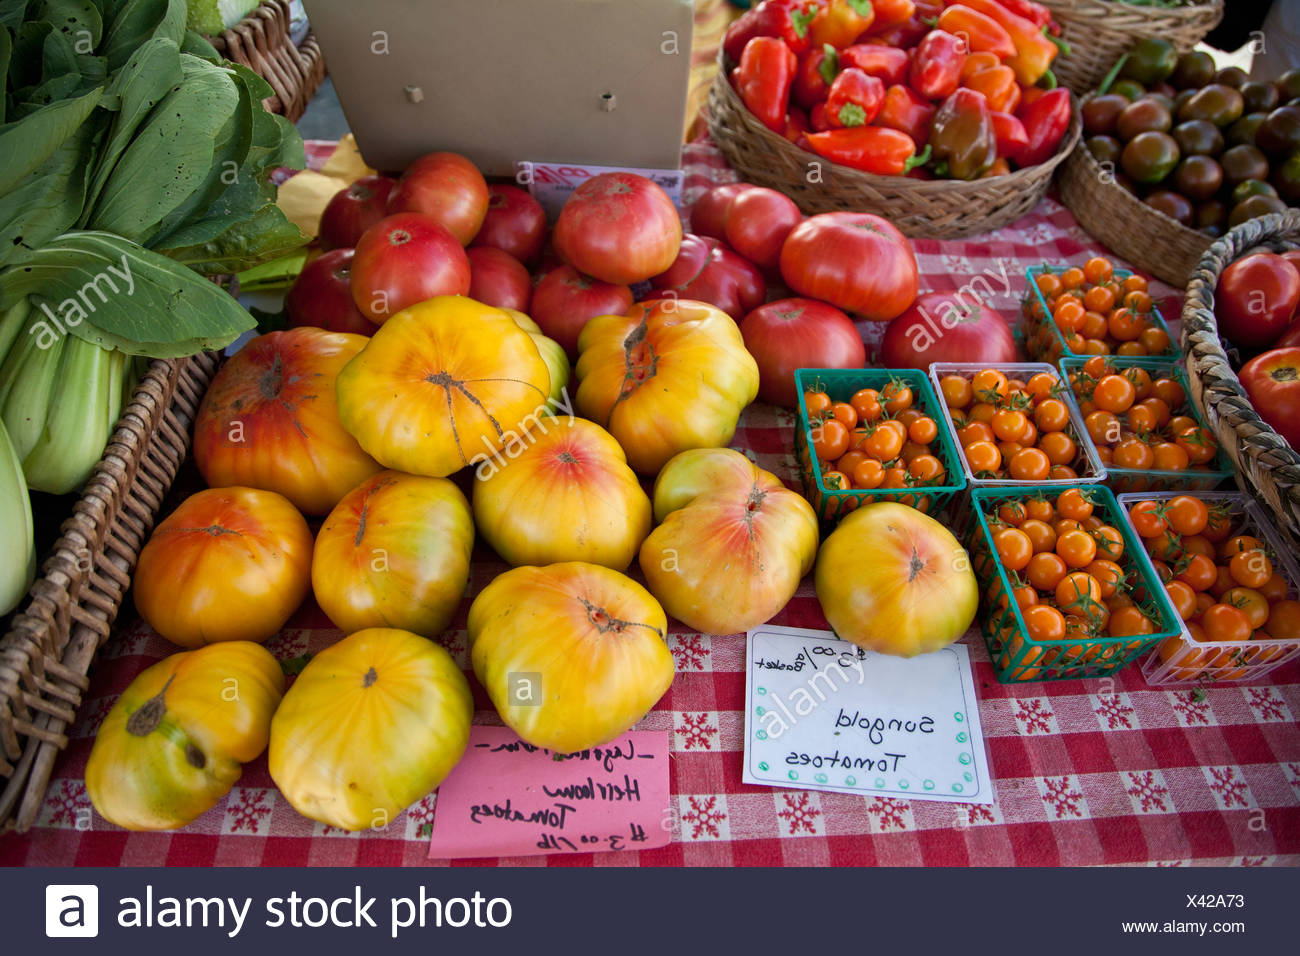 Tomatoes at an Organic Vegetable Market - Stock Image